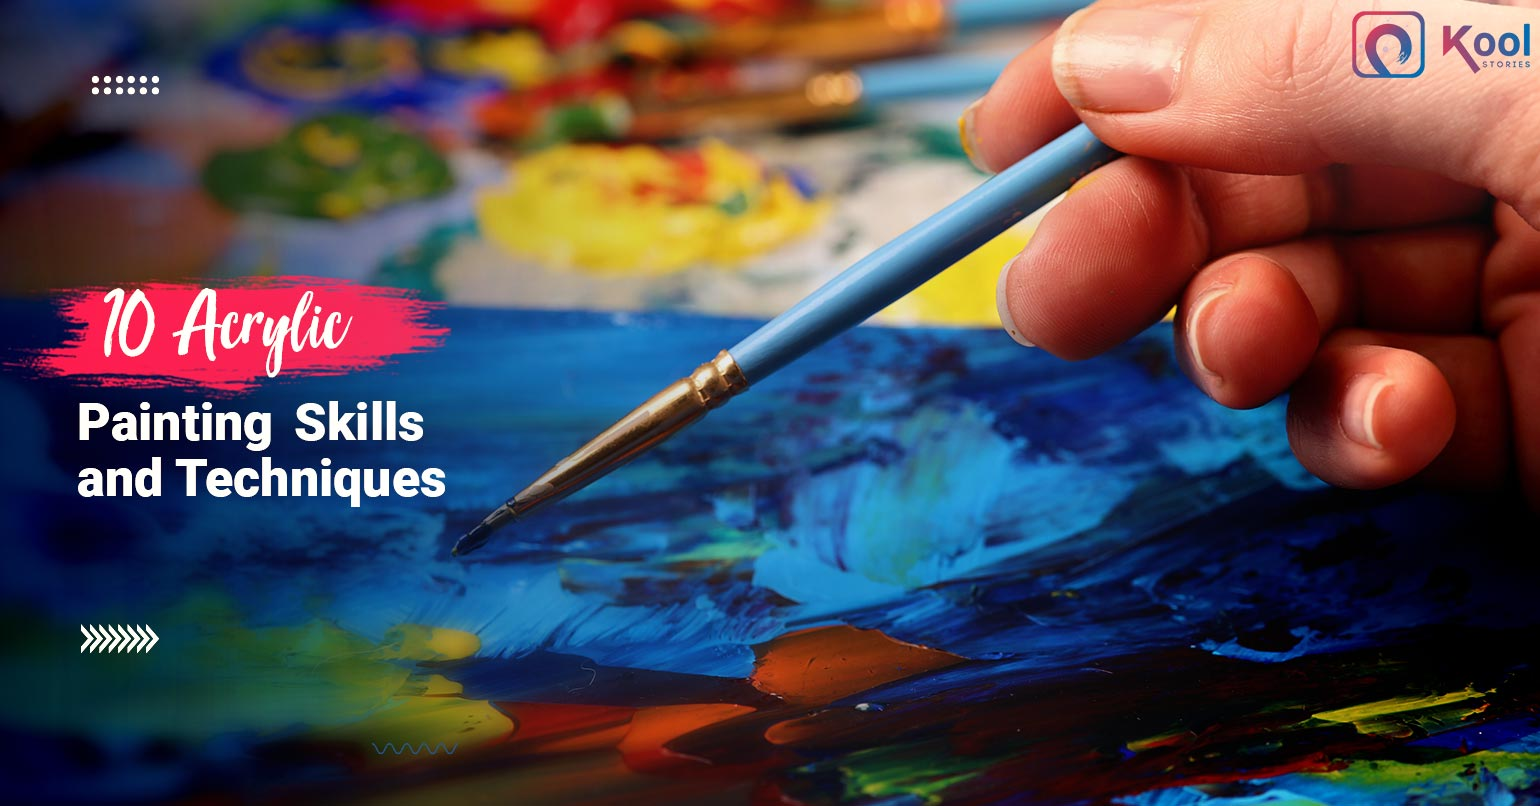 10 Acrylic Painting Skills And Techniques Used By Artists